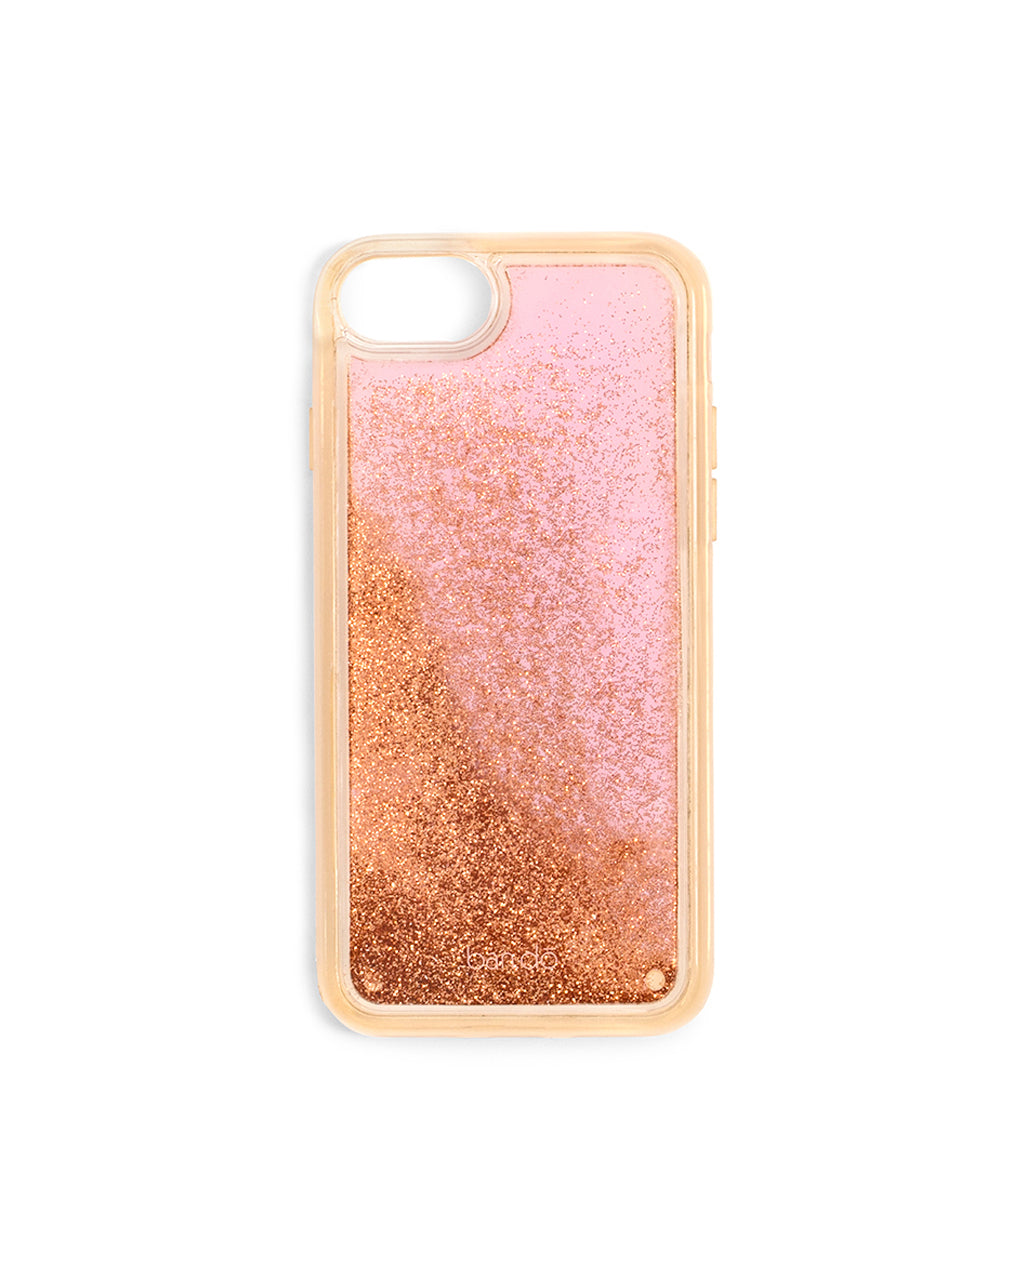 Apricot iPhone case with metallic glitter